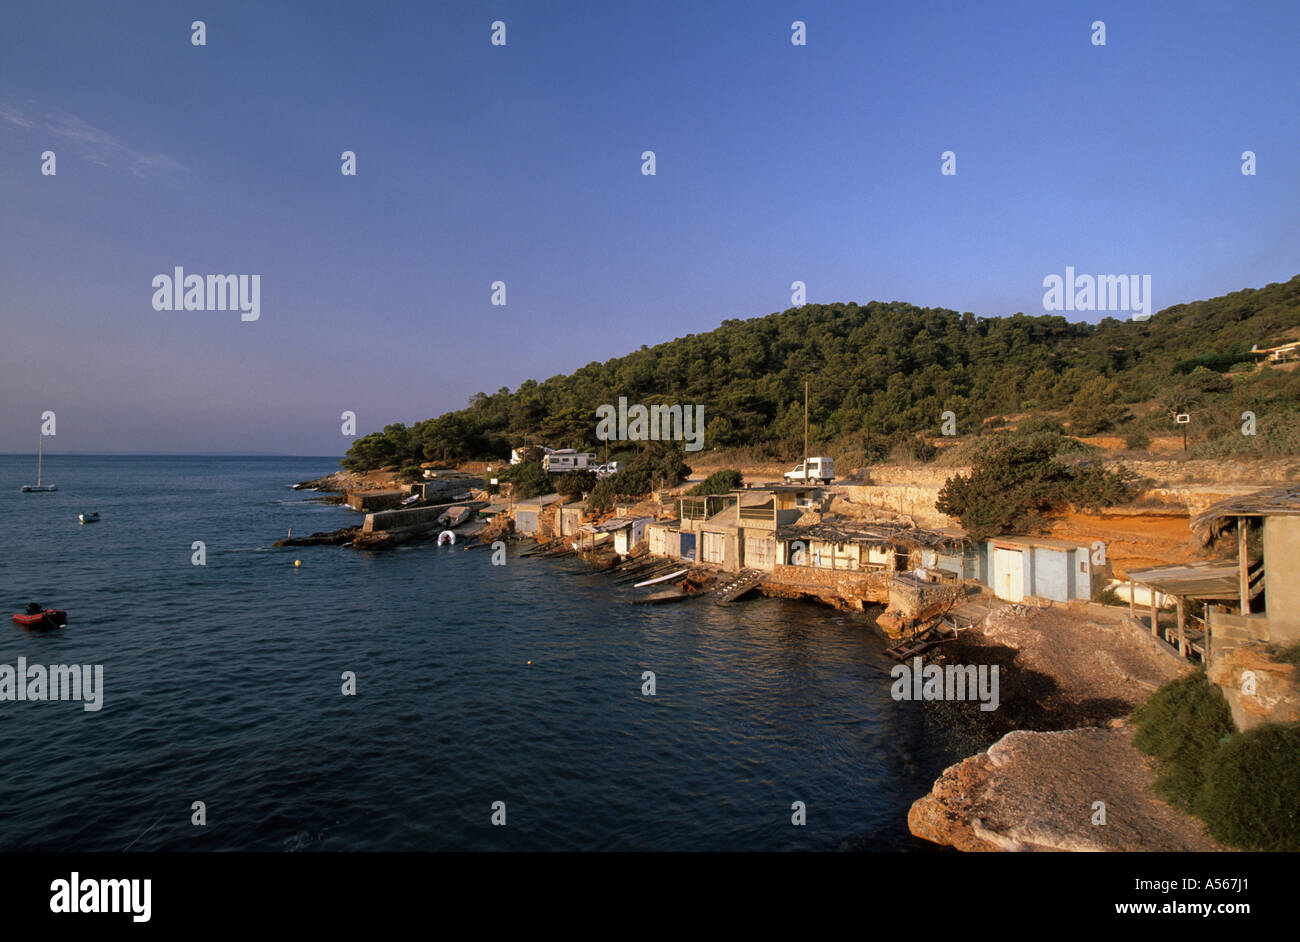 Boathouses in Sa Canal in Ibiza Spain - Stock Image